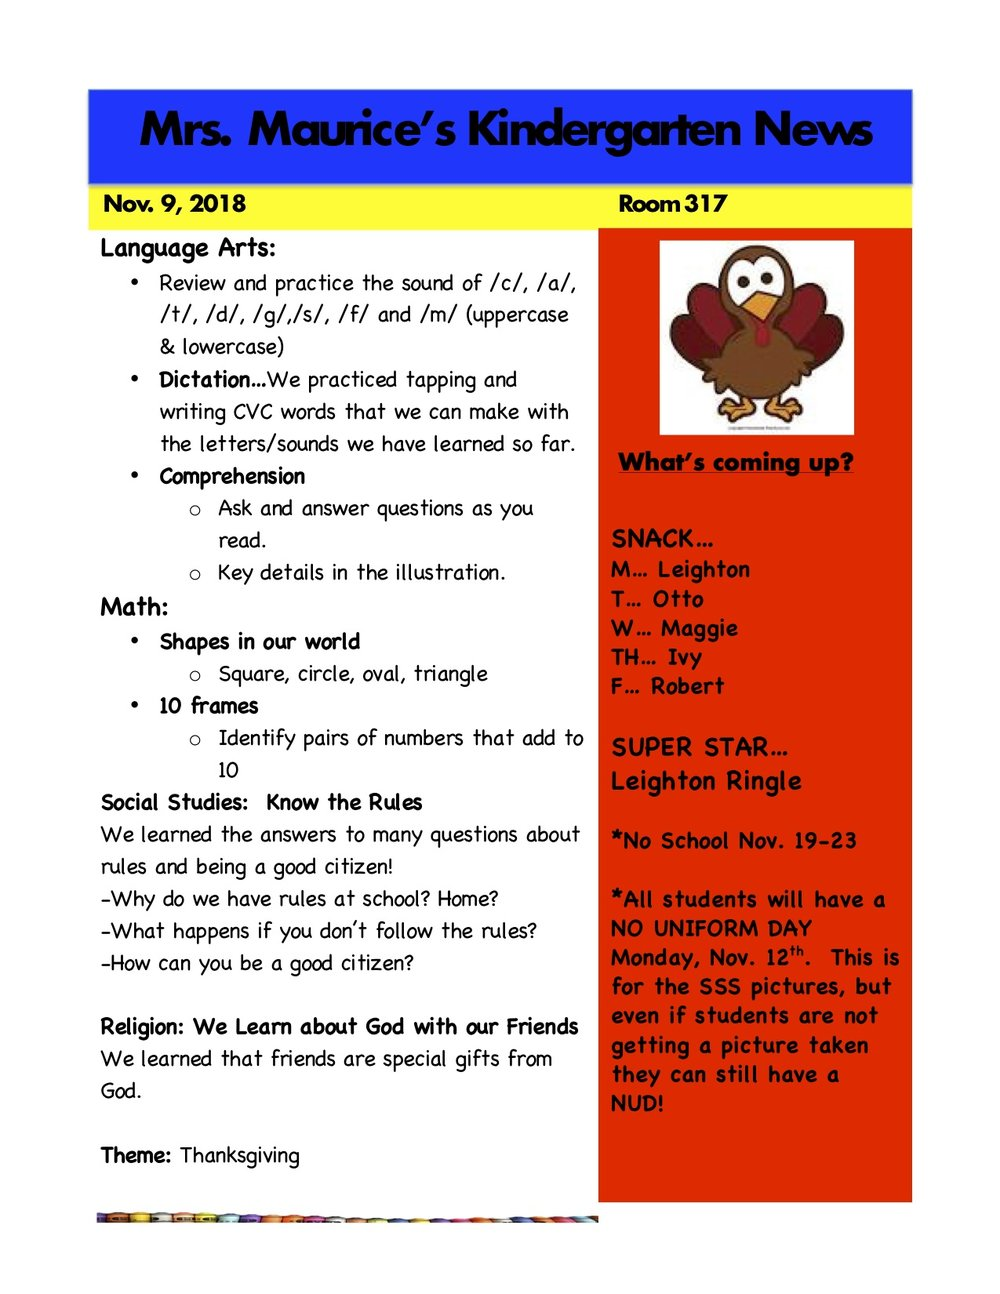 Kindergarten News Nov. 9.jpg